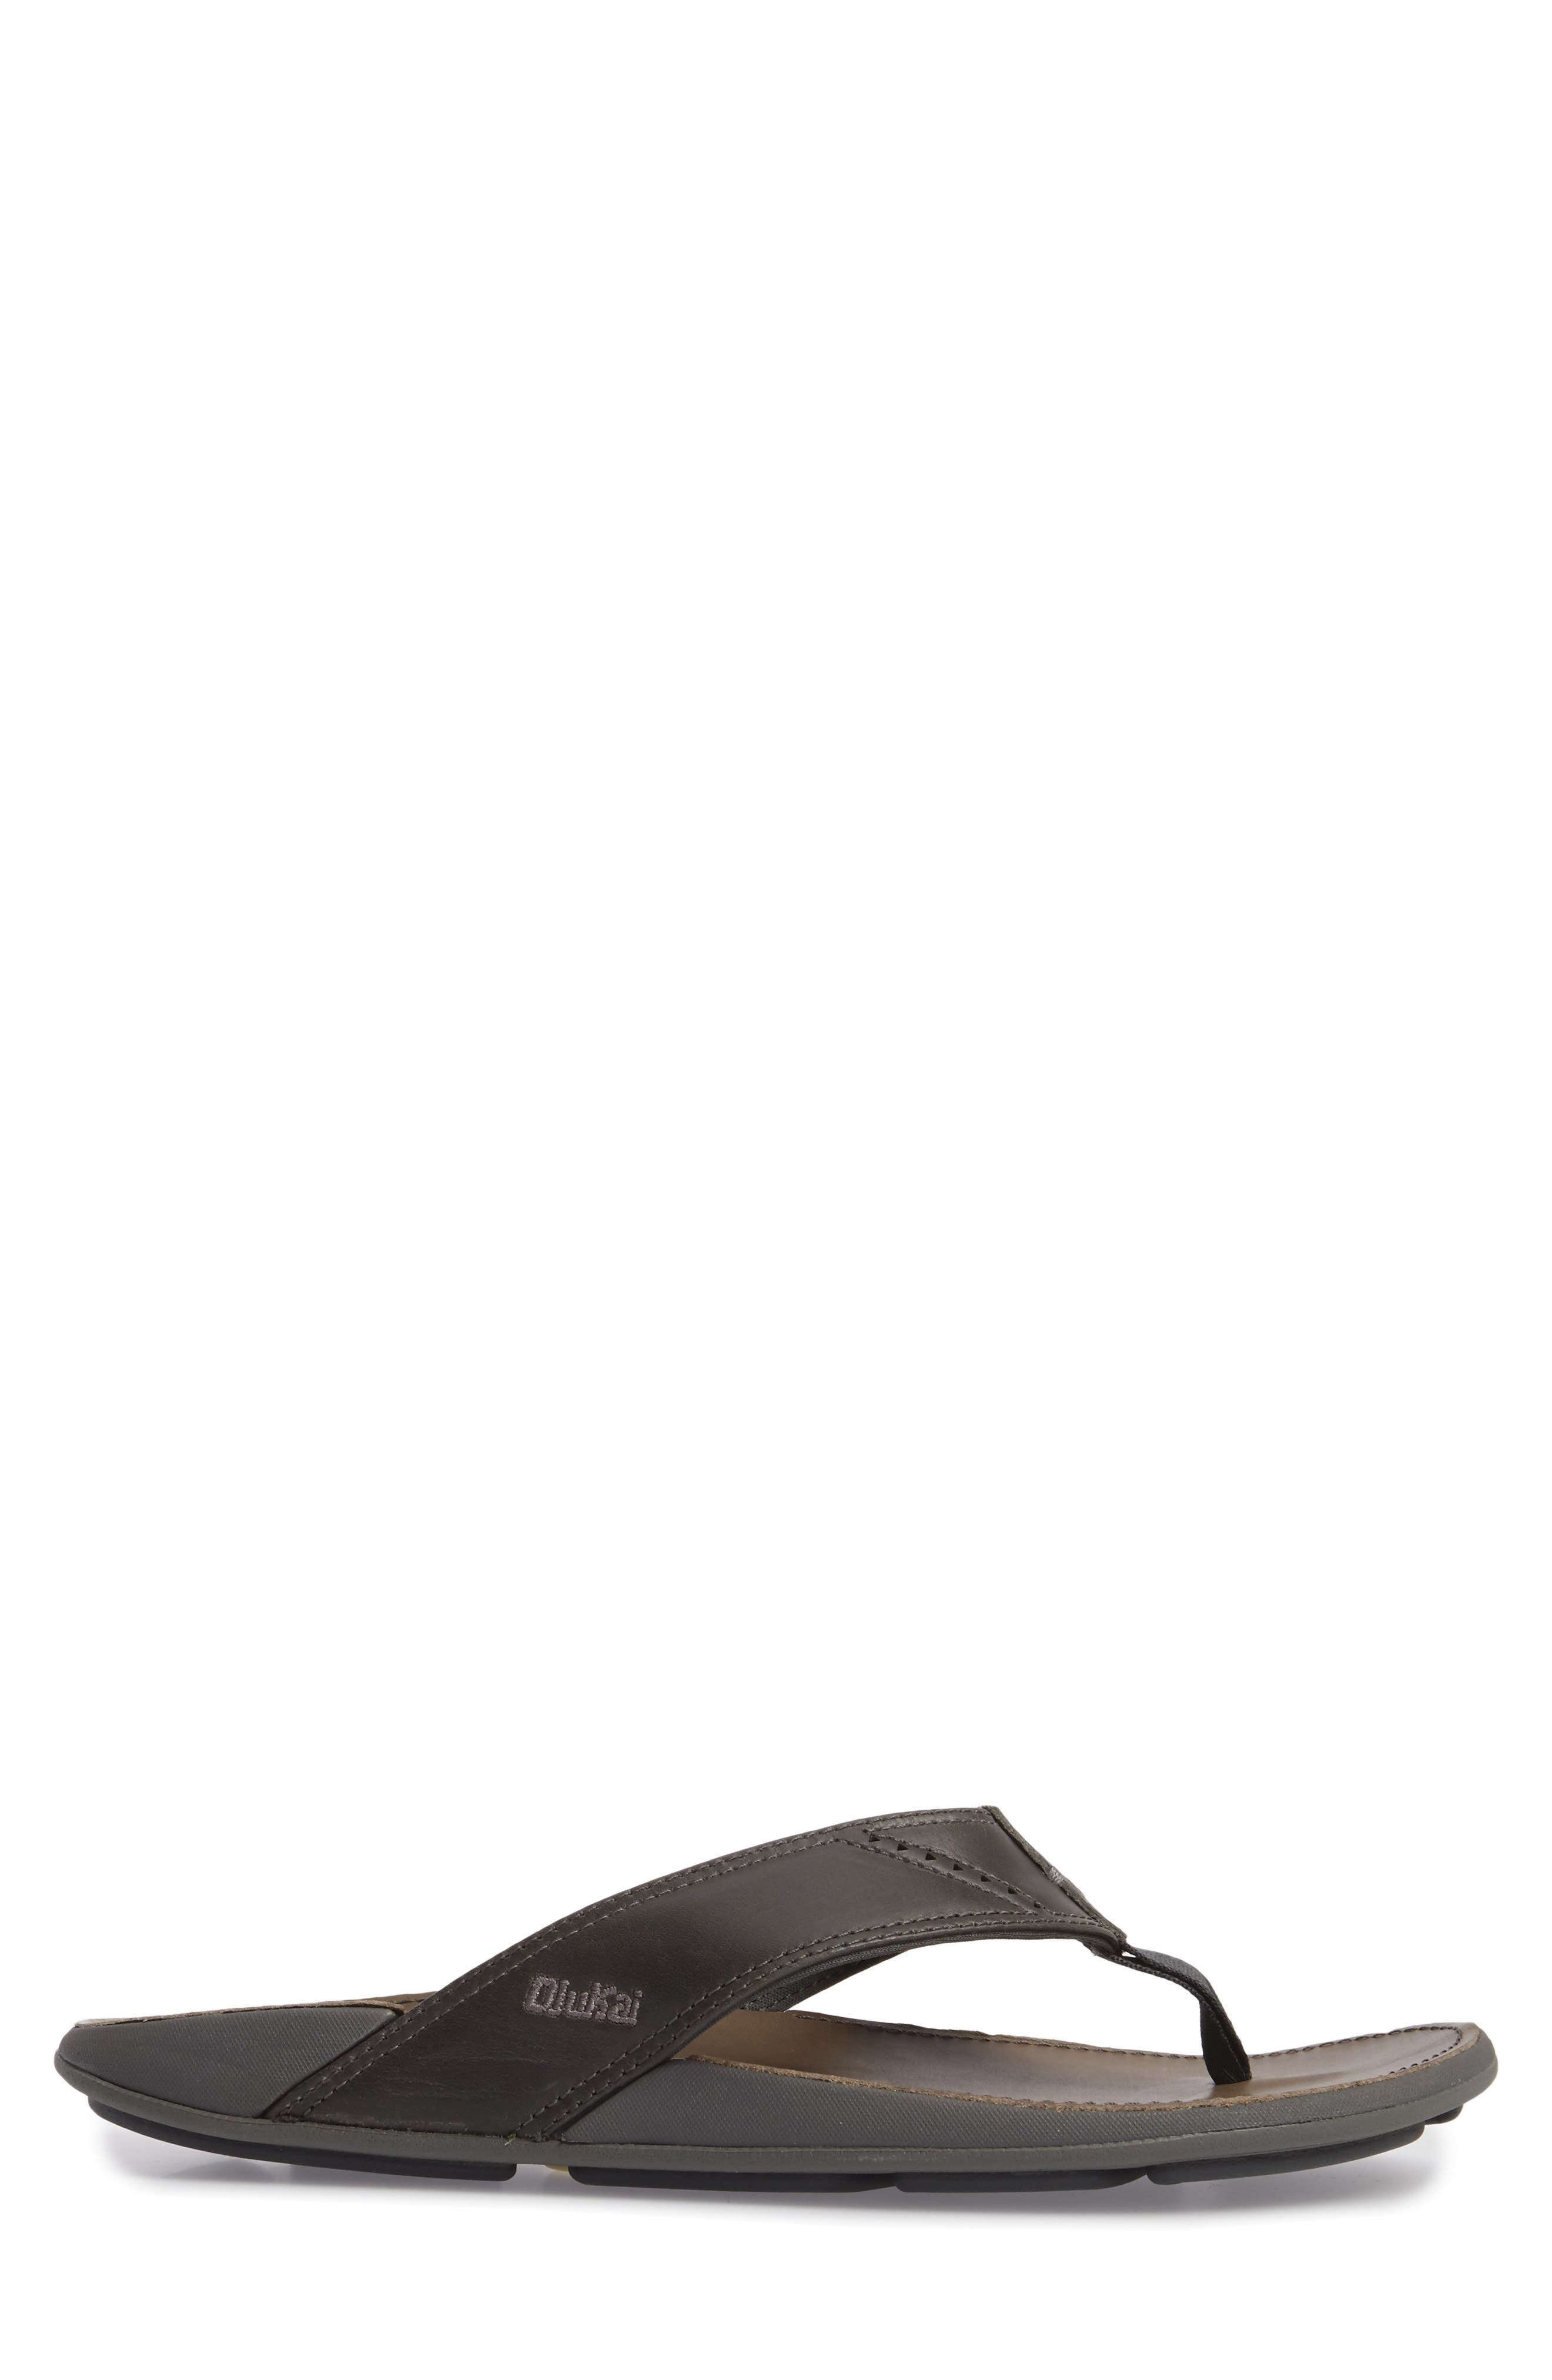 'Nui' Leather Flip Flop,                             Alternate thumbnail 3, color,                             DARK SHADOW/ CHARCOAL LEATHER